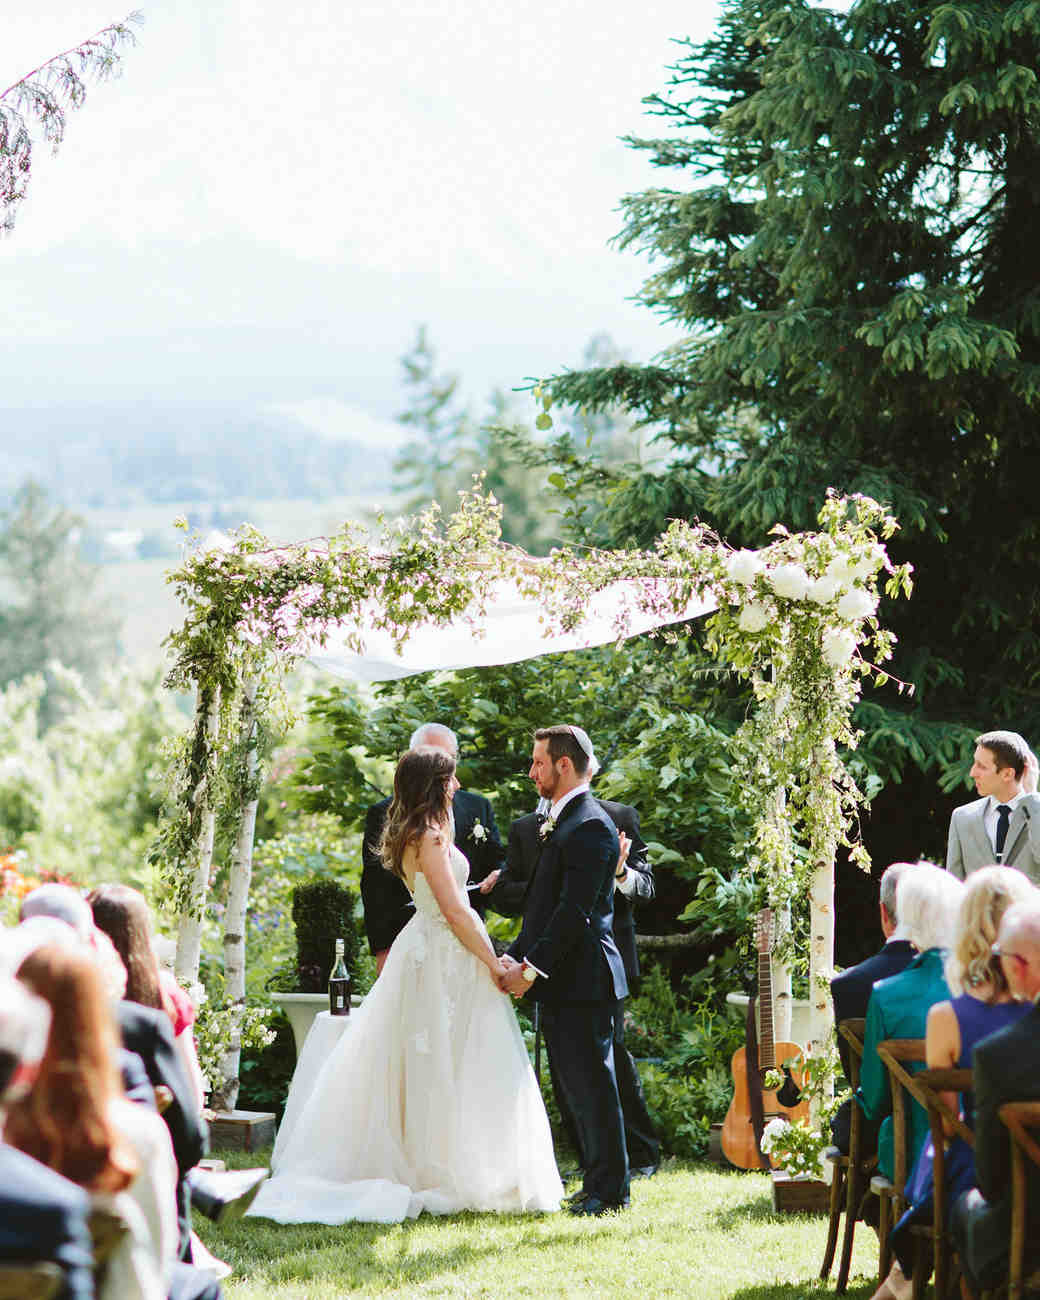 Wedding Ceremony: A Scenic, Nature-Inspired Wedding In Oregon